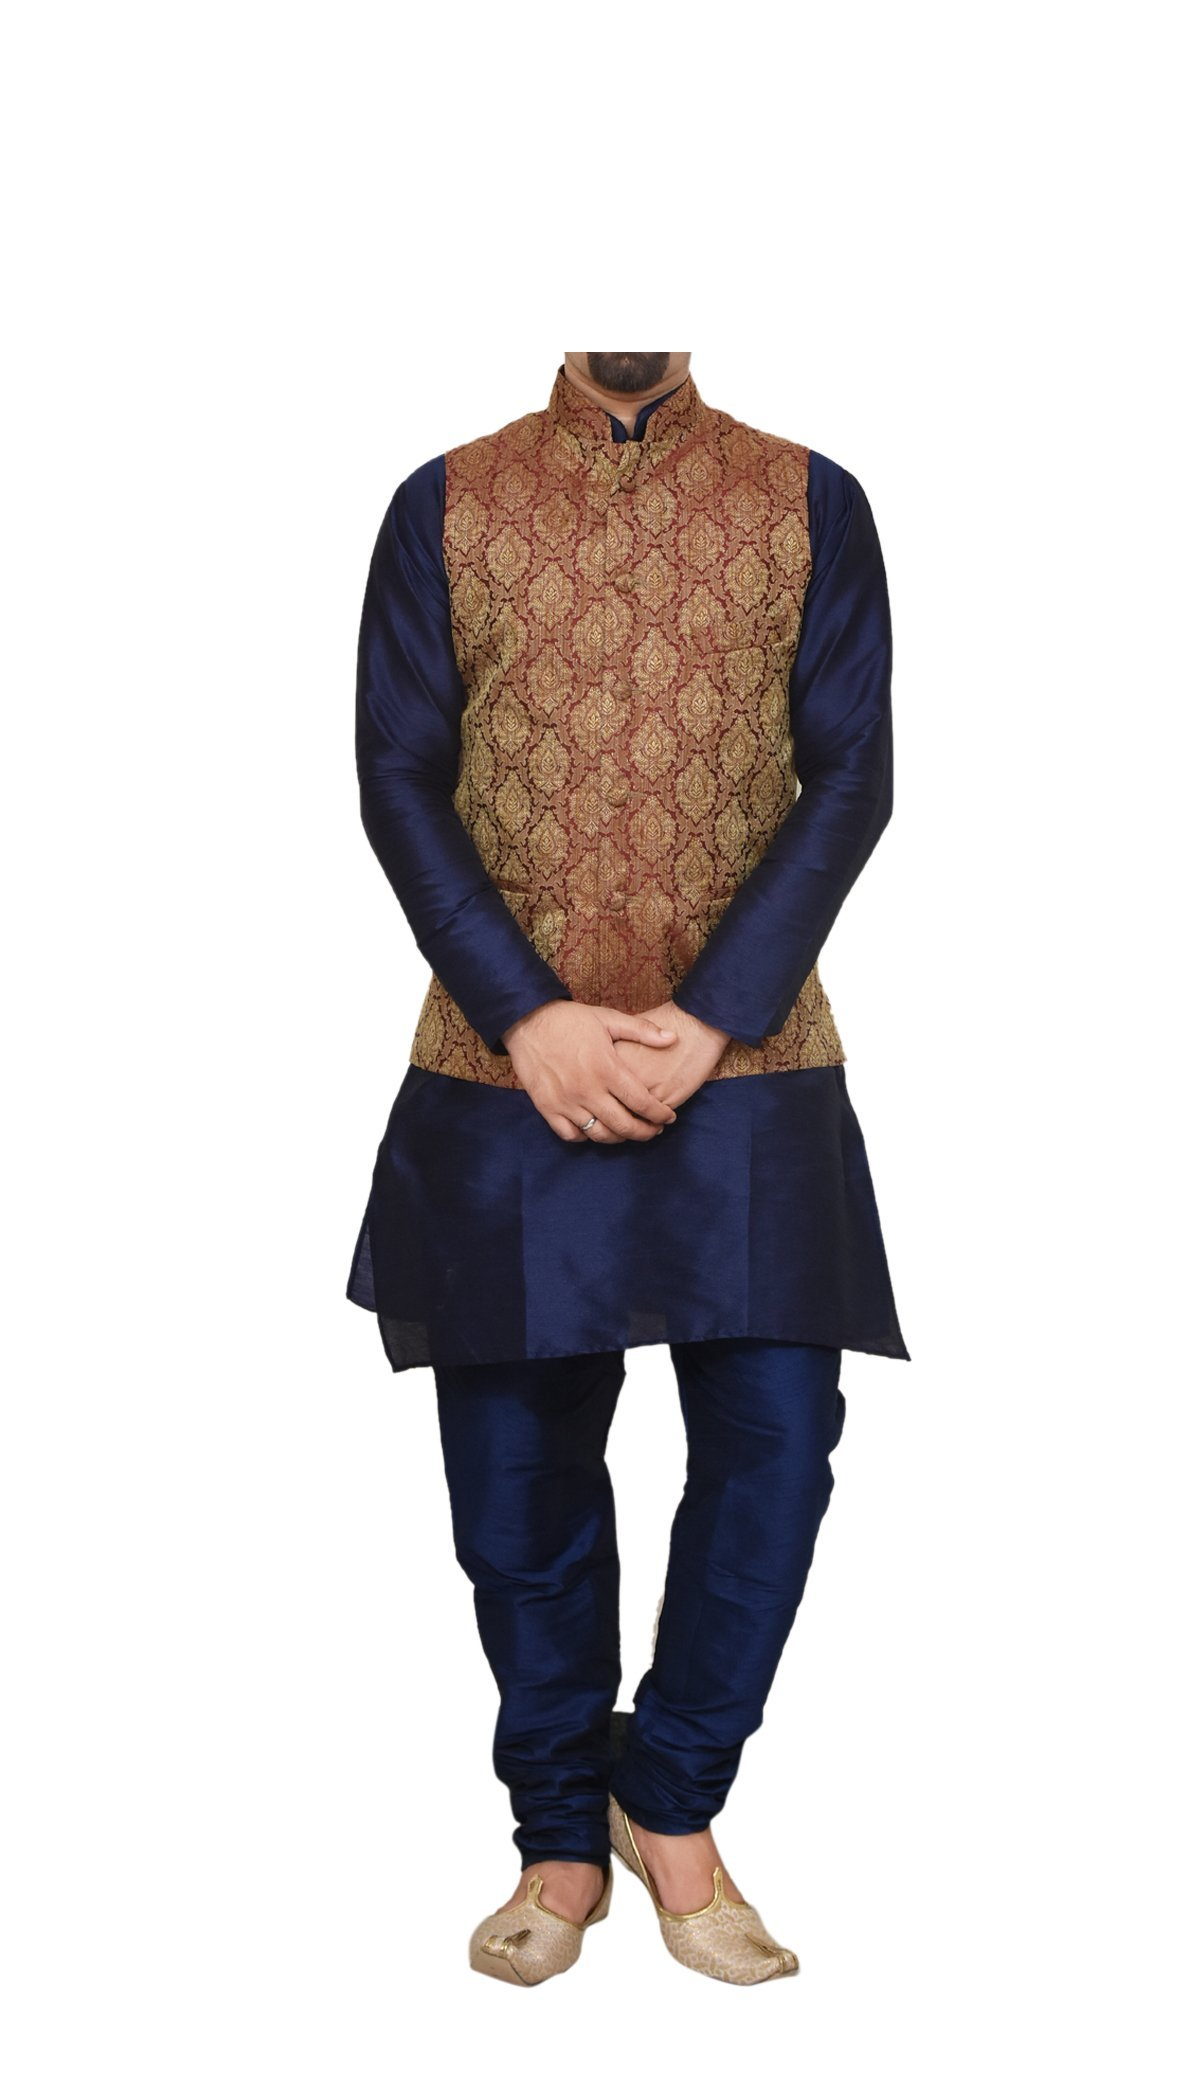 Mag Men's Nevy Blue Matching silk Kurta Churidhar With Maroon Waistcoat (RG-10812-44) by MagLite